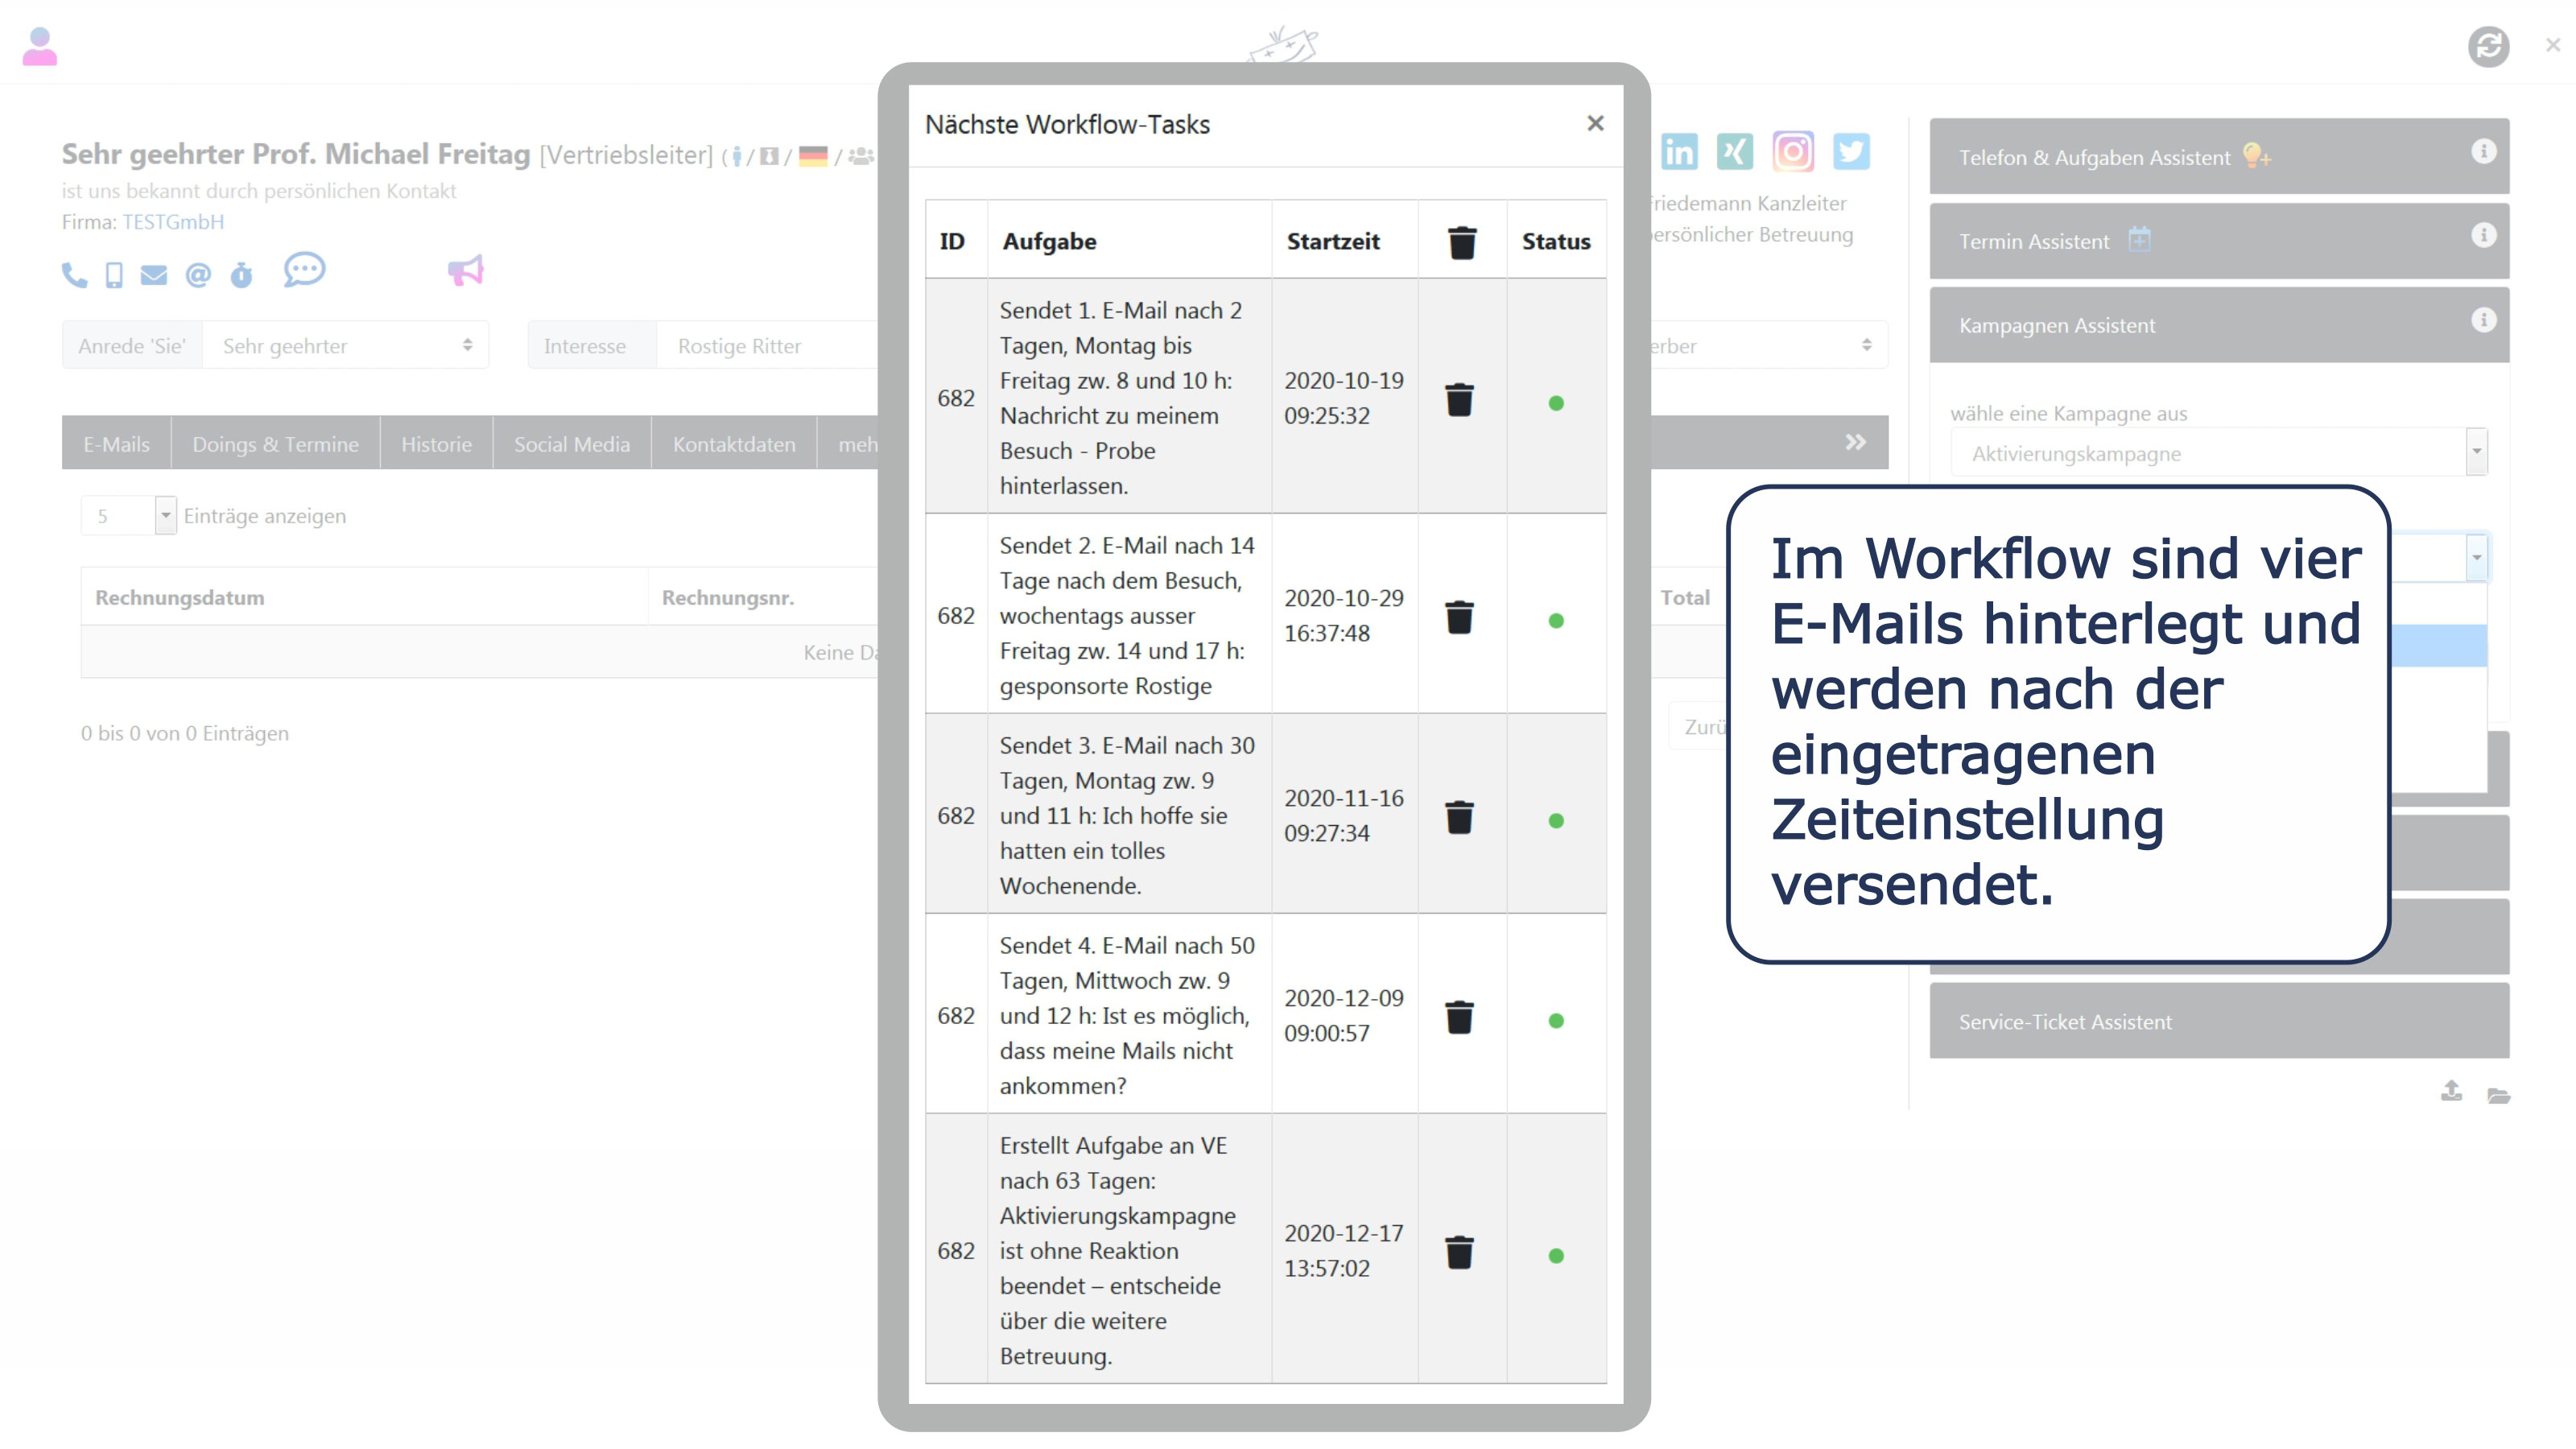 AK-Kampagne Workflows